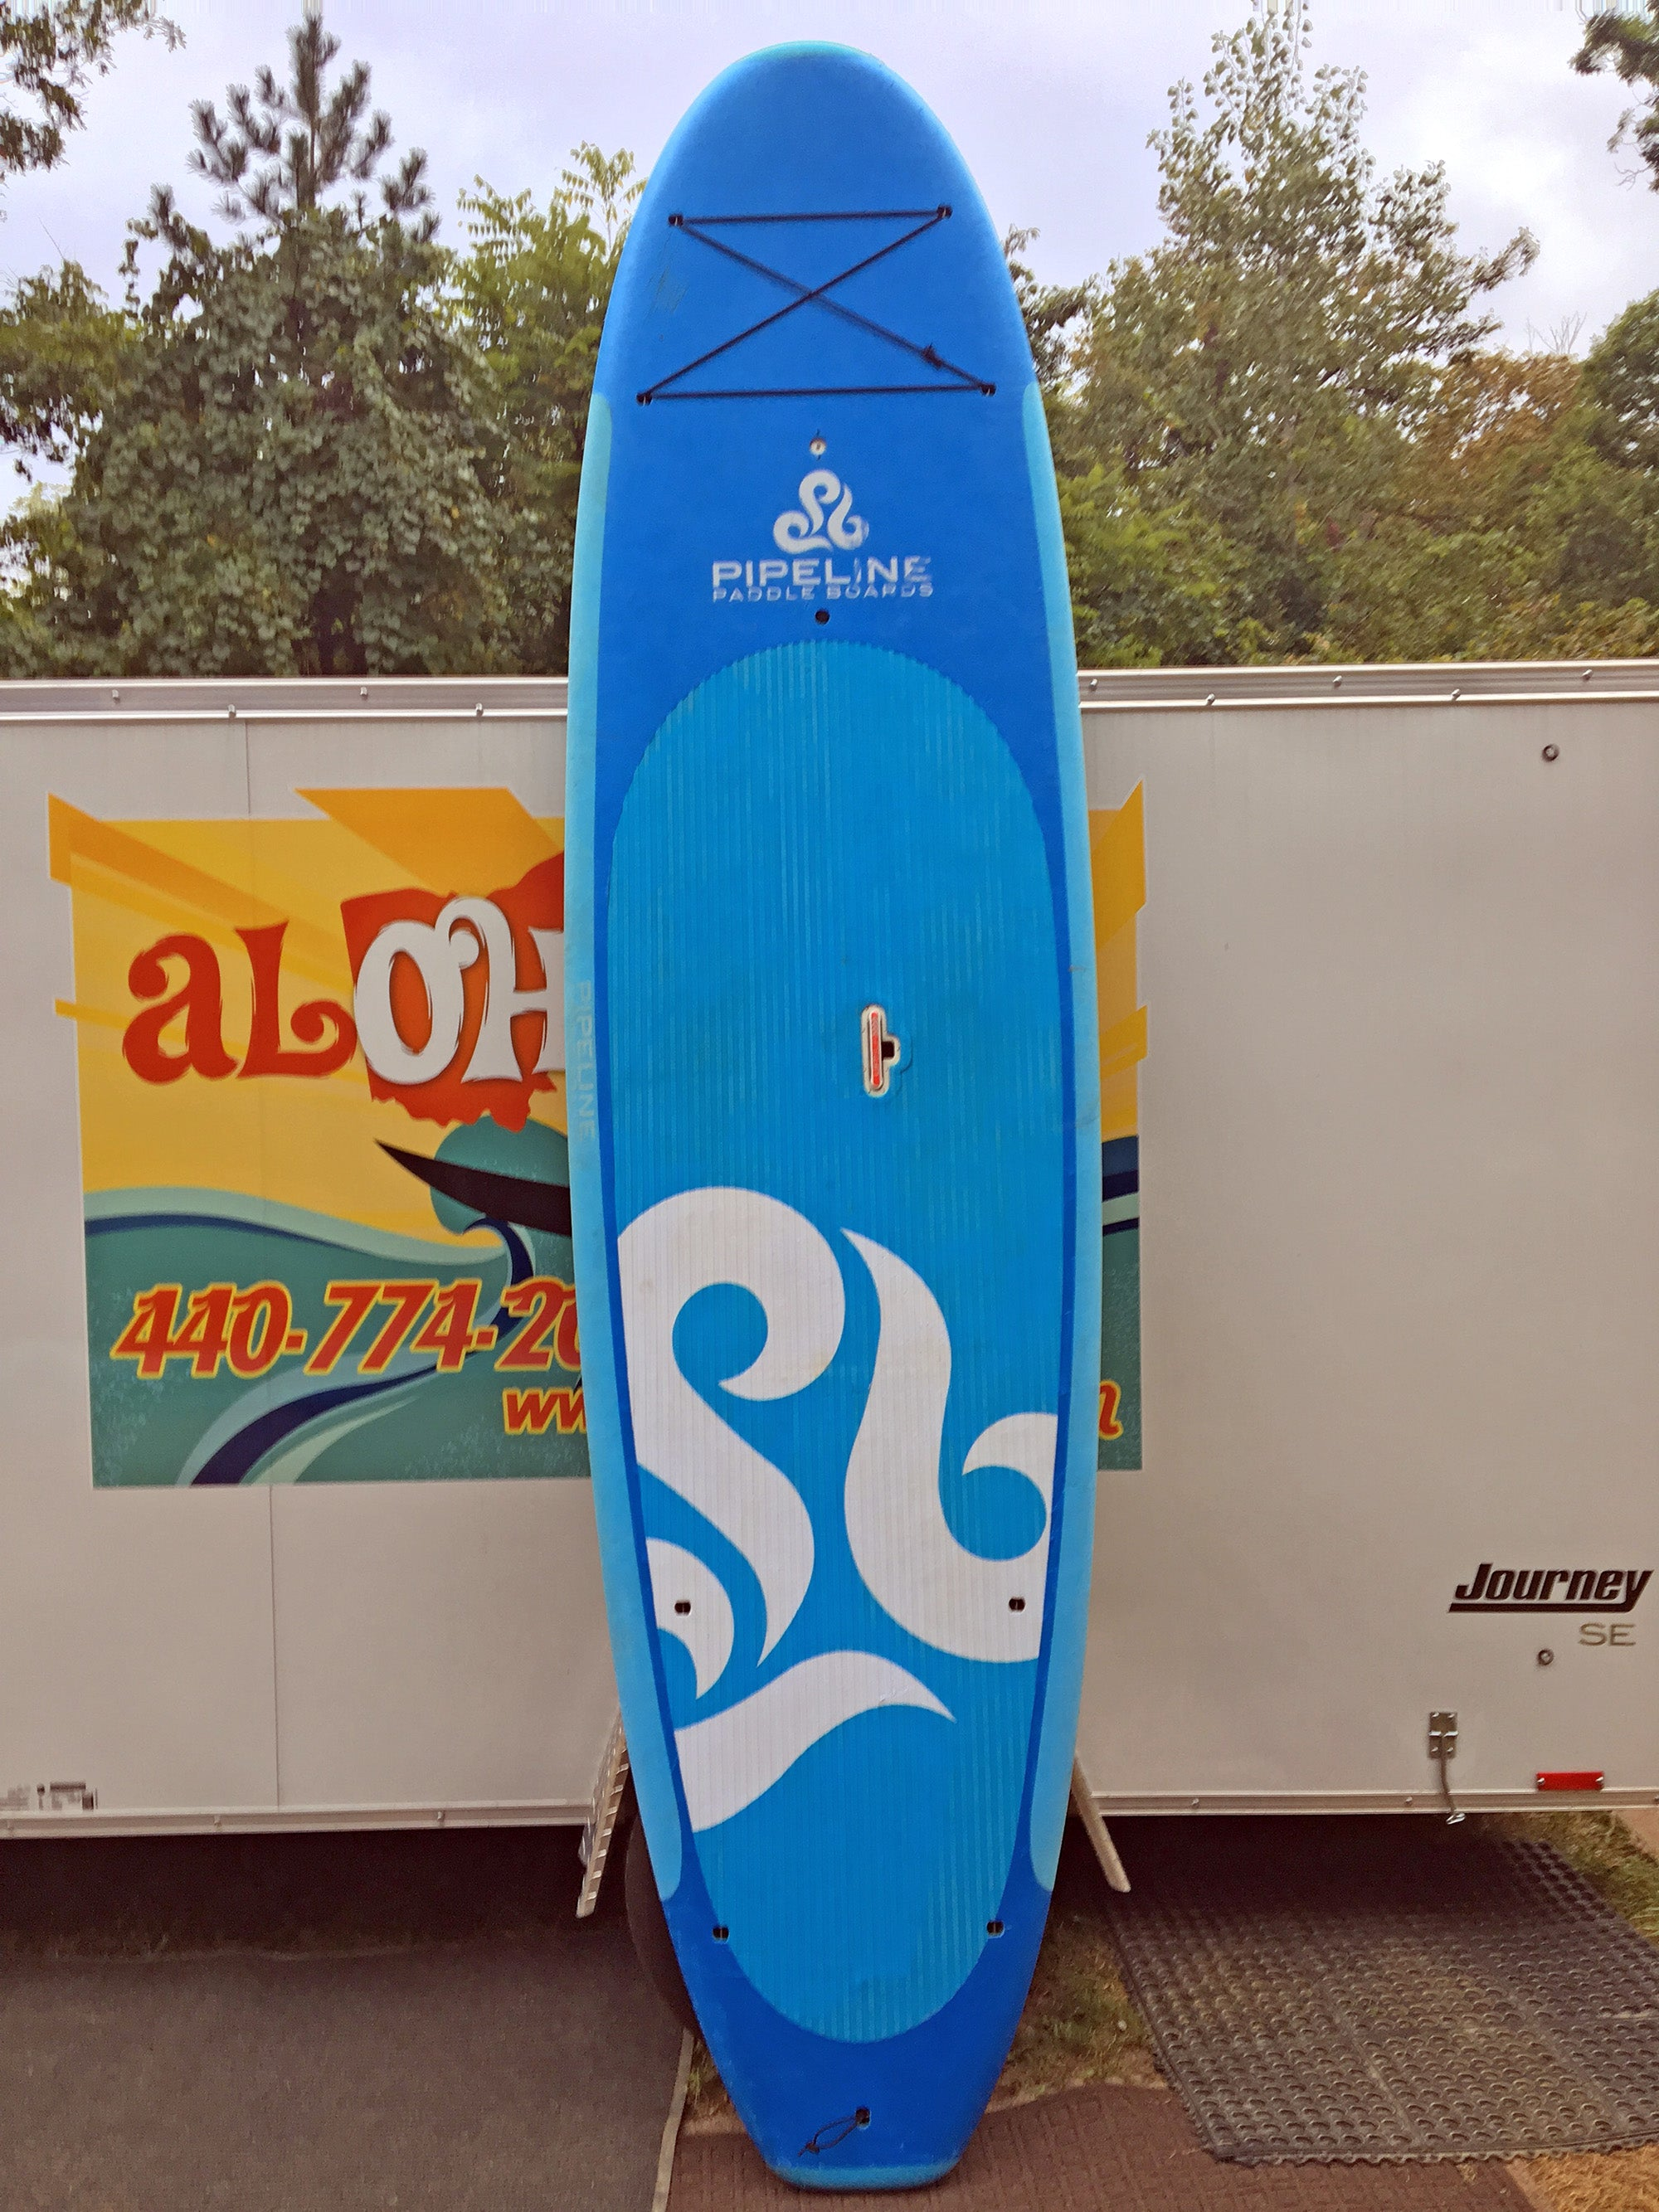 Used Paddle Boards >> Pipeline Paddle Boards Squid 11 0 Used